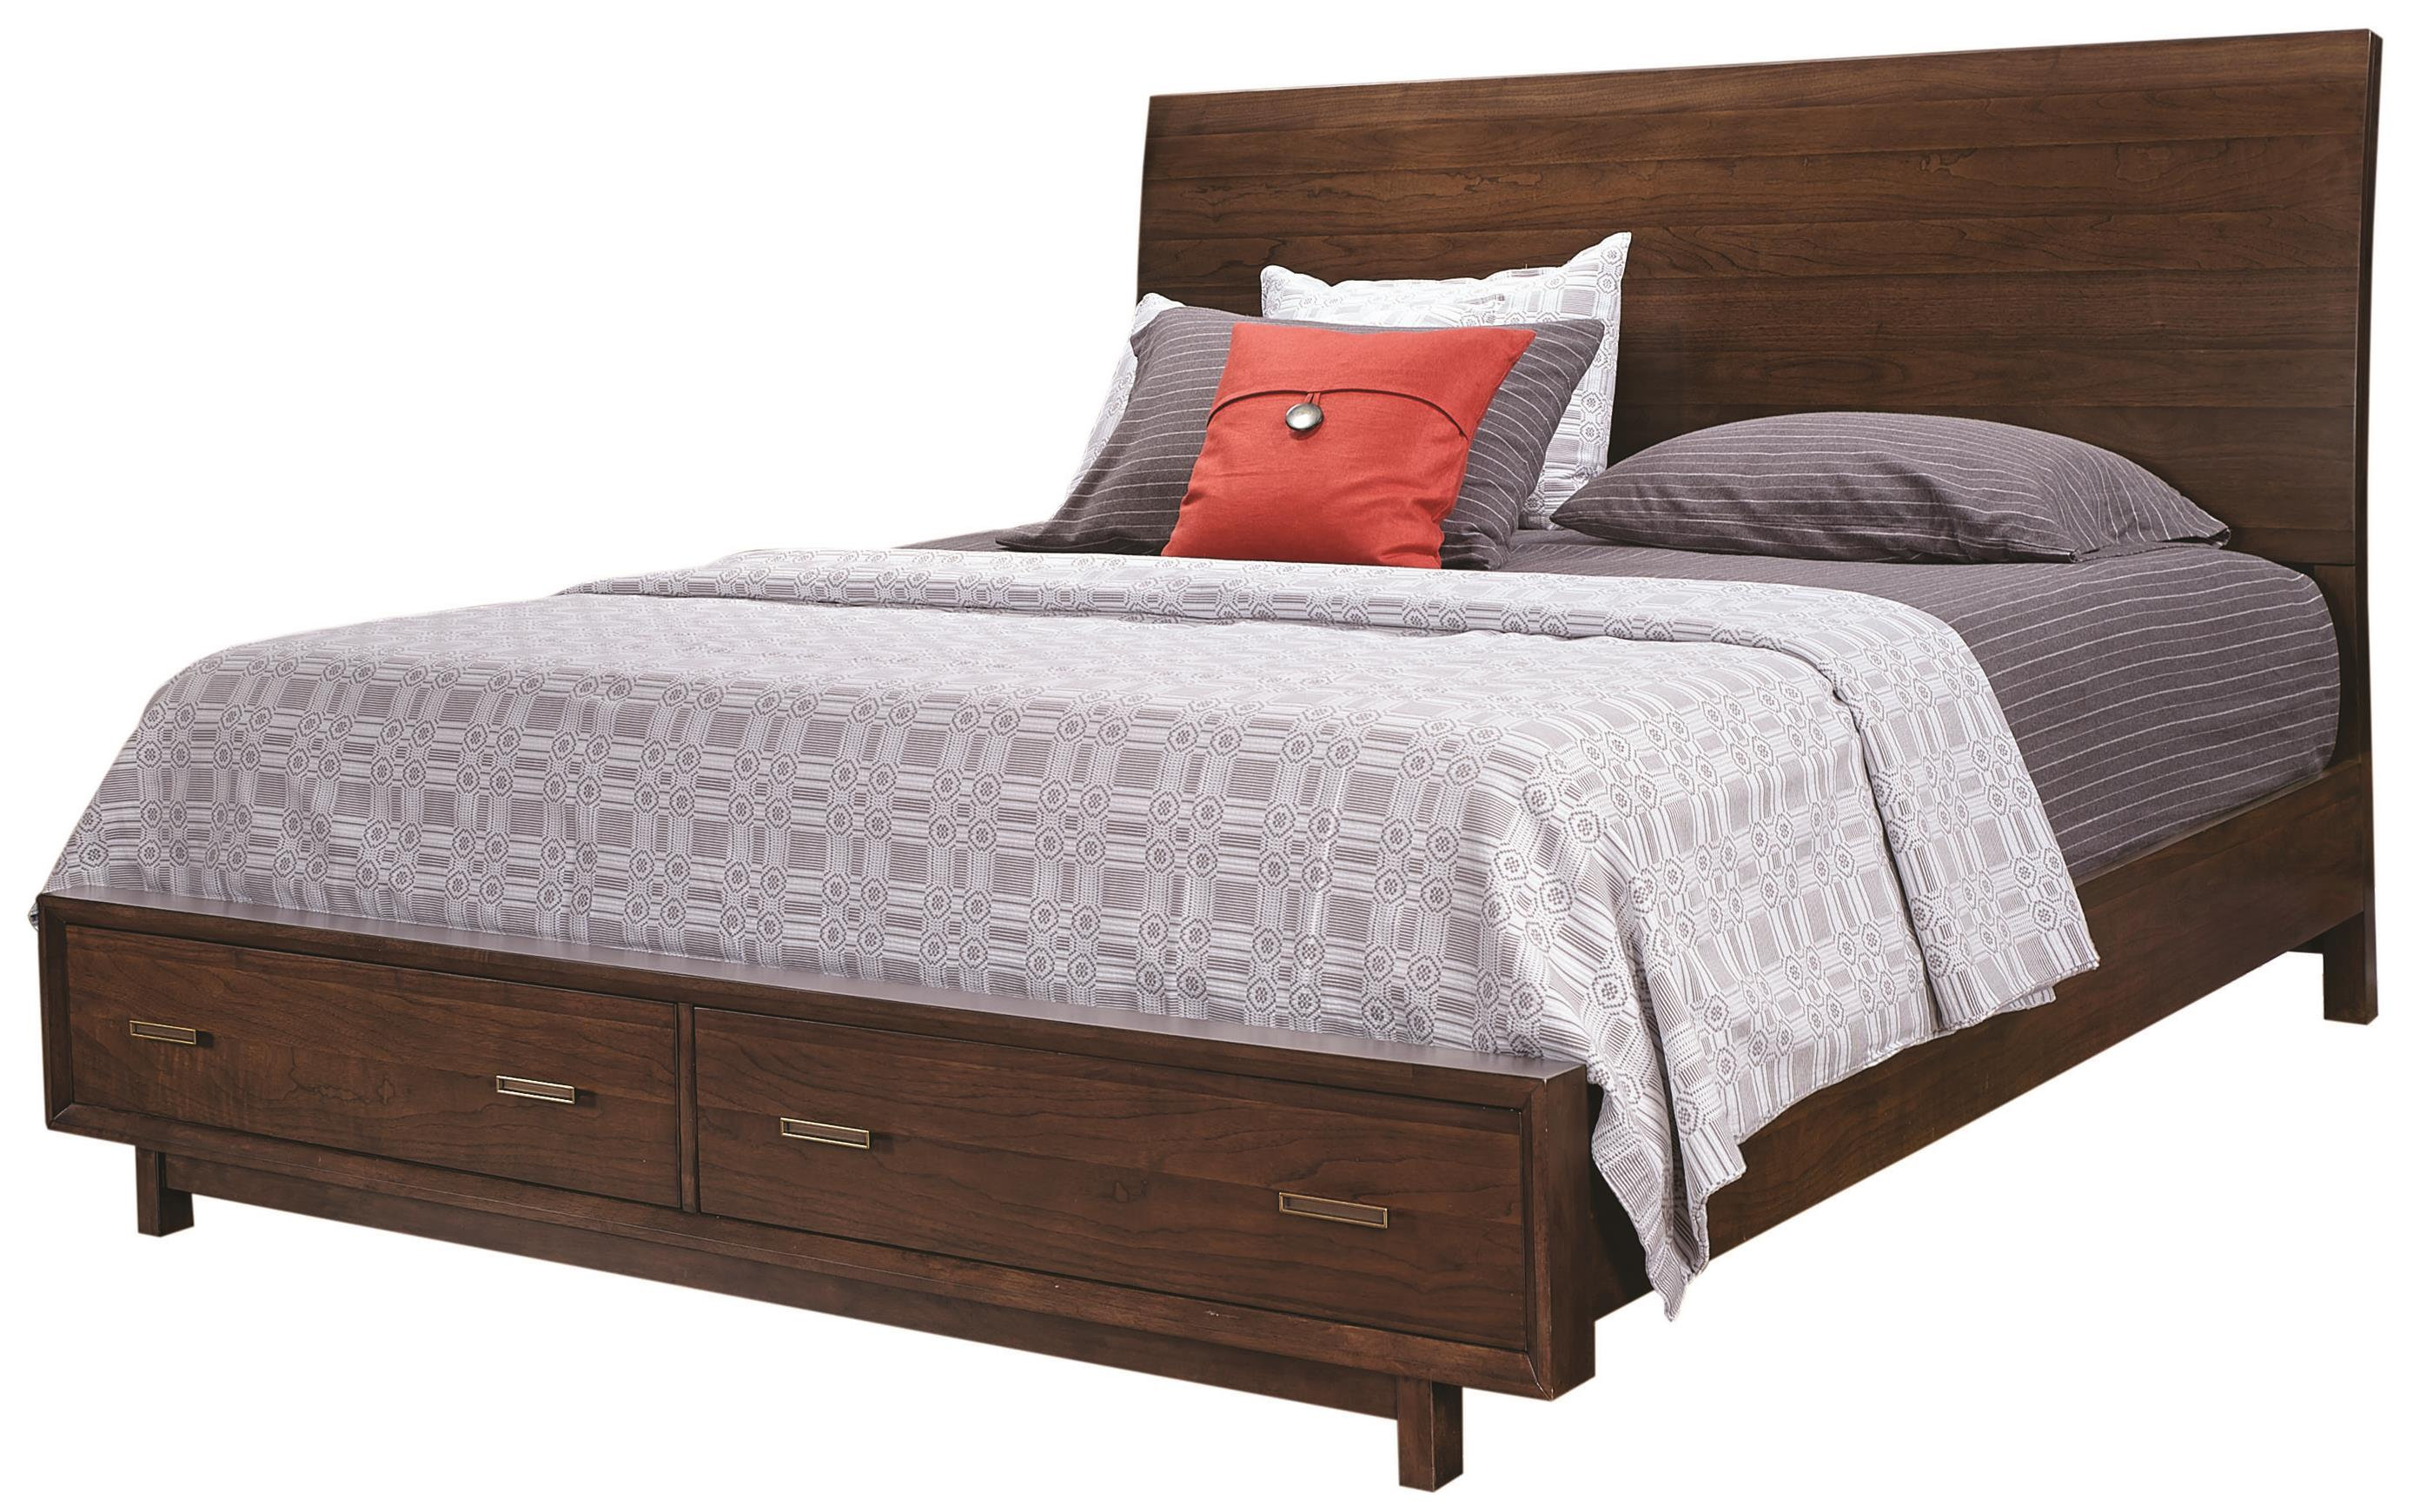 Aspenhome Walnut Heights King Sleigh Storage Bed - Item Number: IWH-404+407D+406